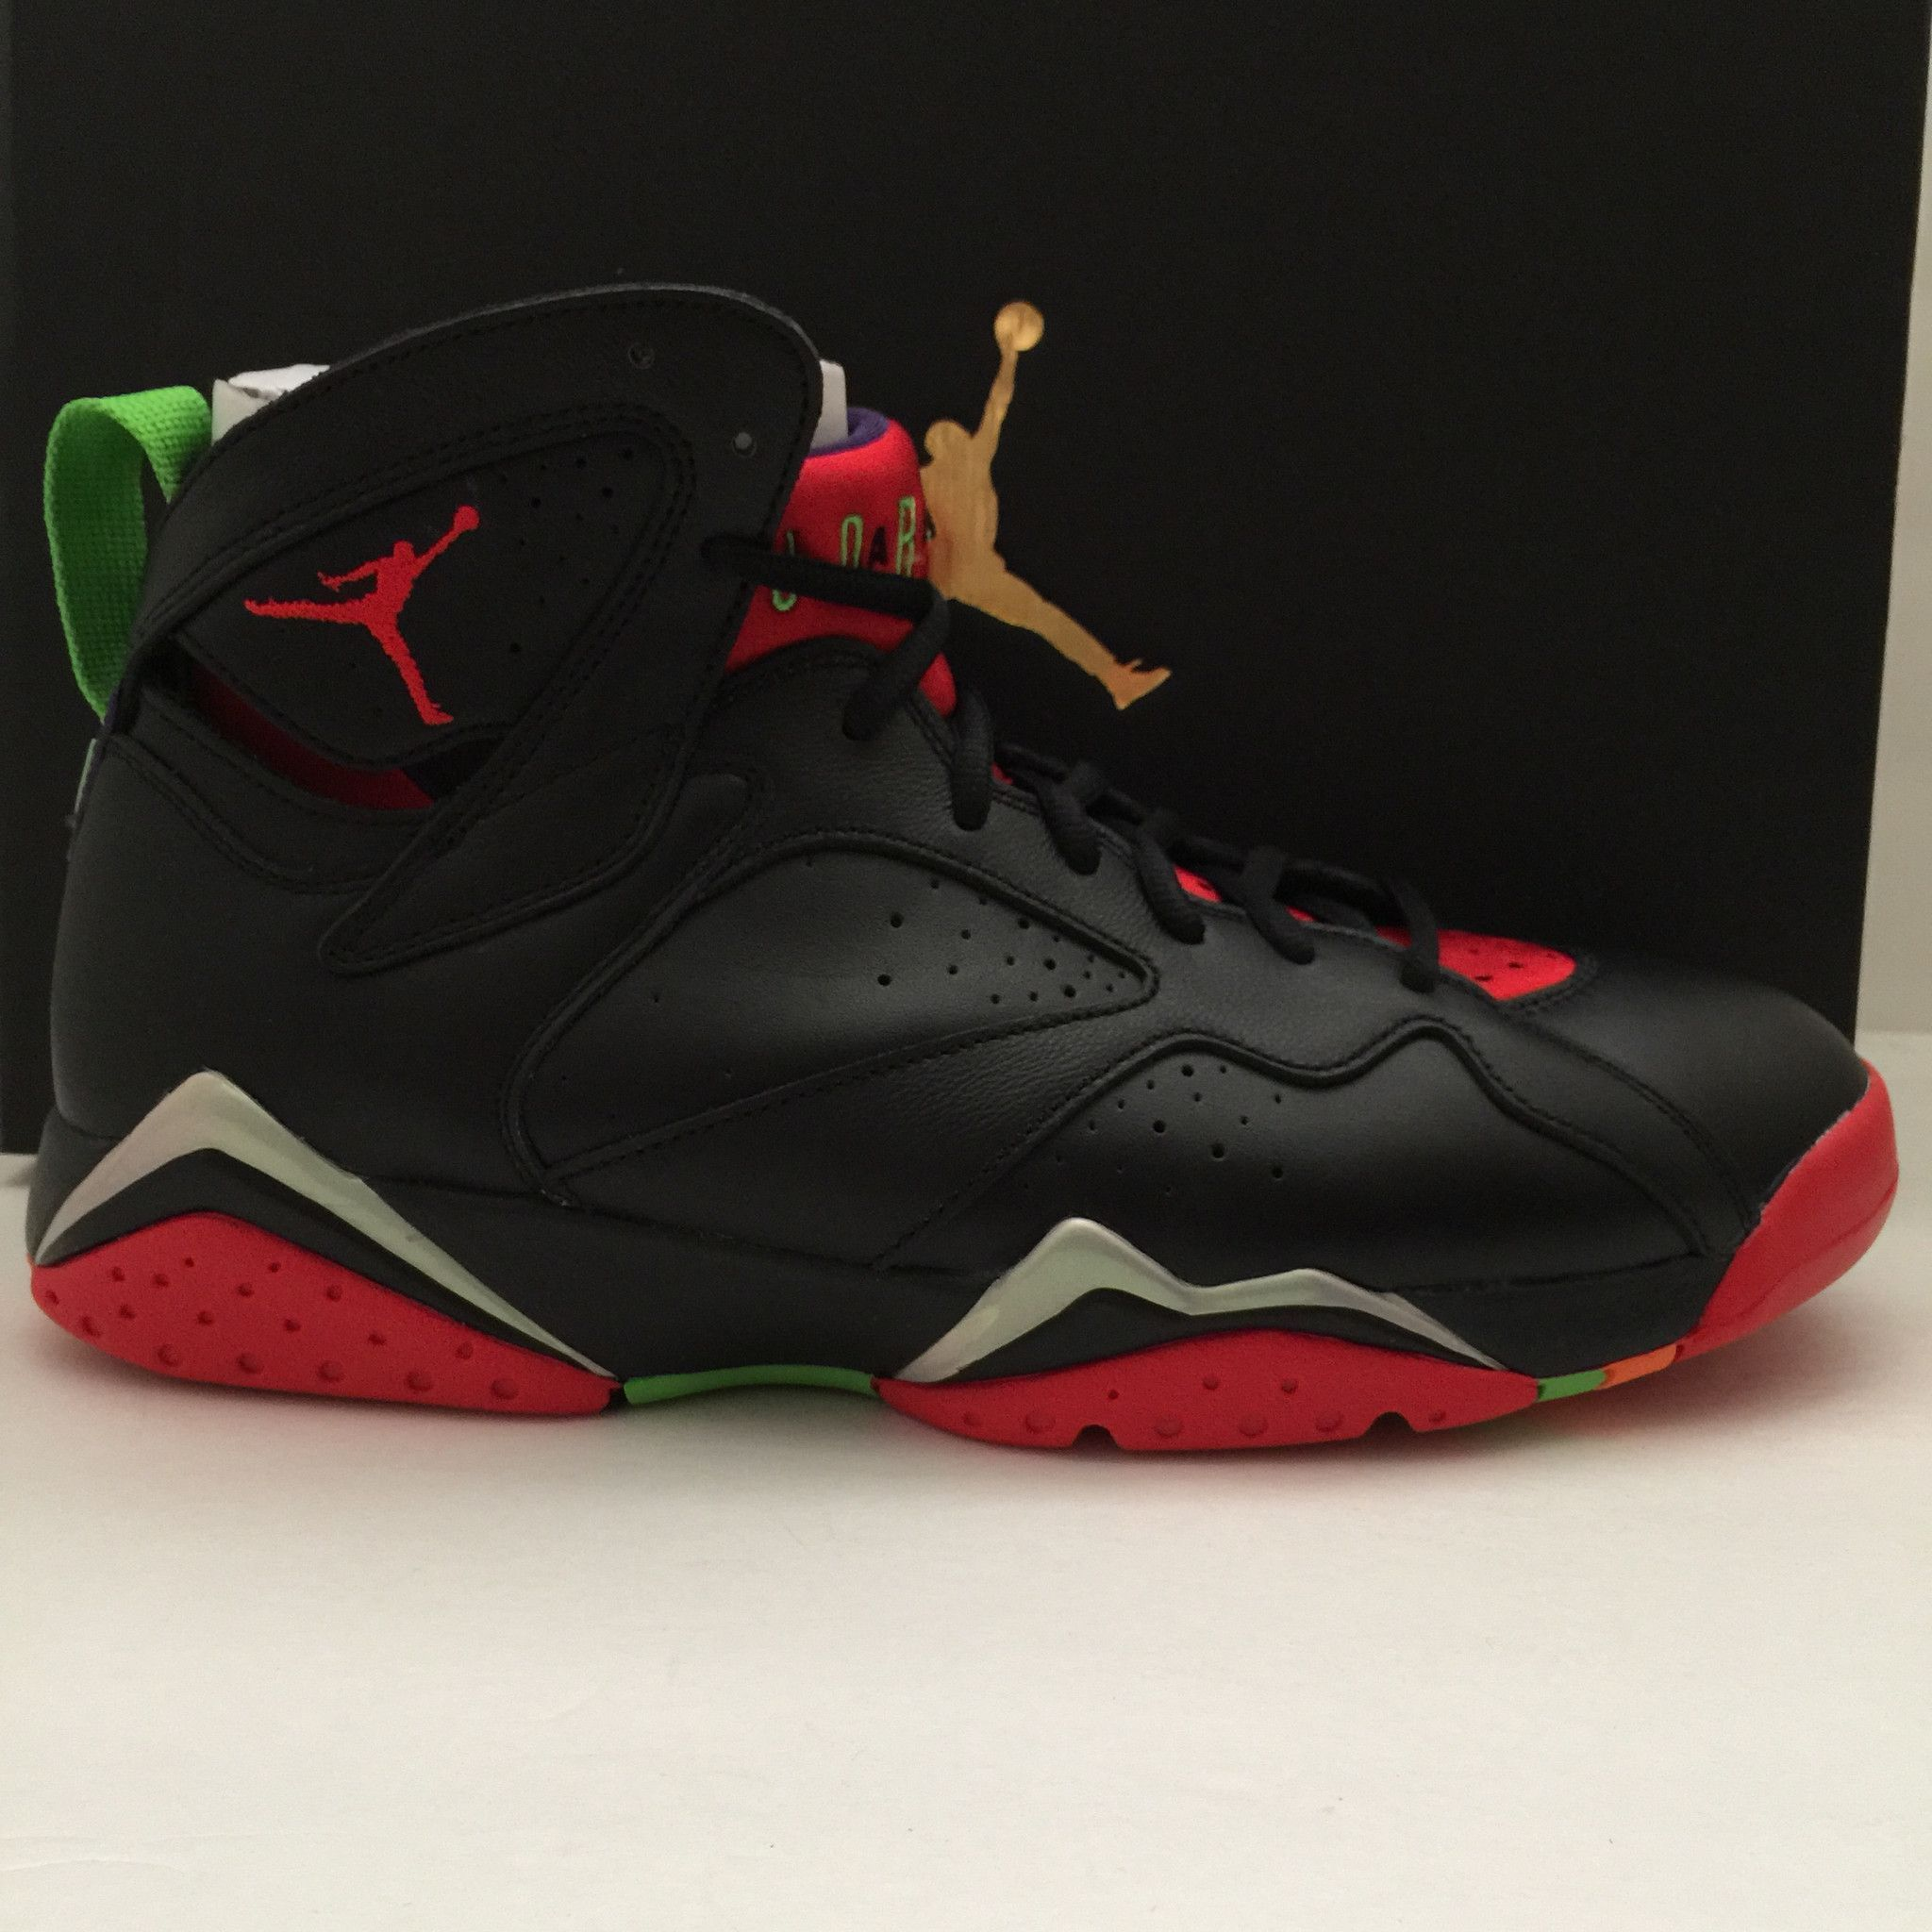 Ds Nike Air Jordan 7 Retro Marvin The Martian Size 10 5 Air